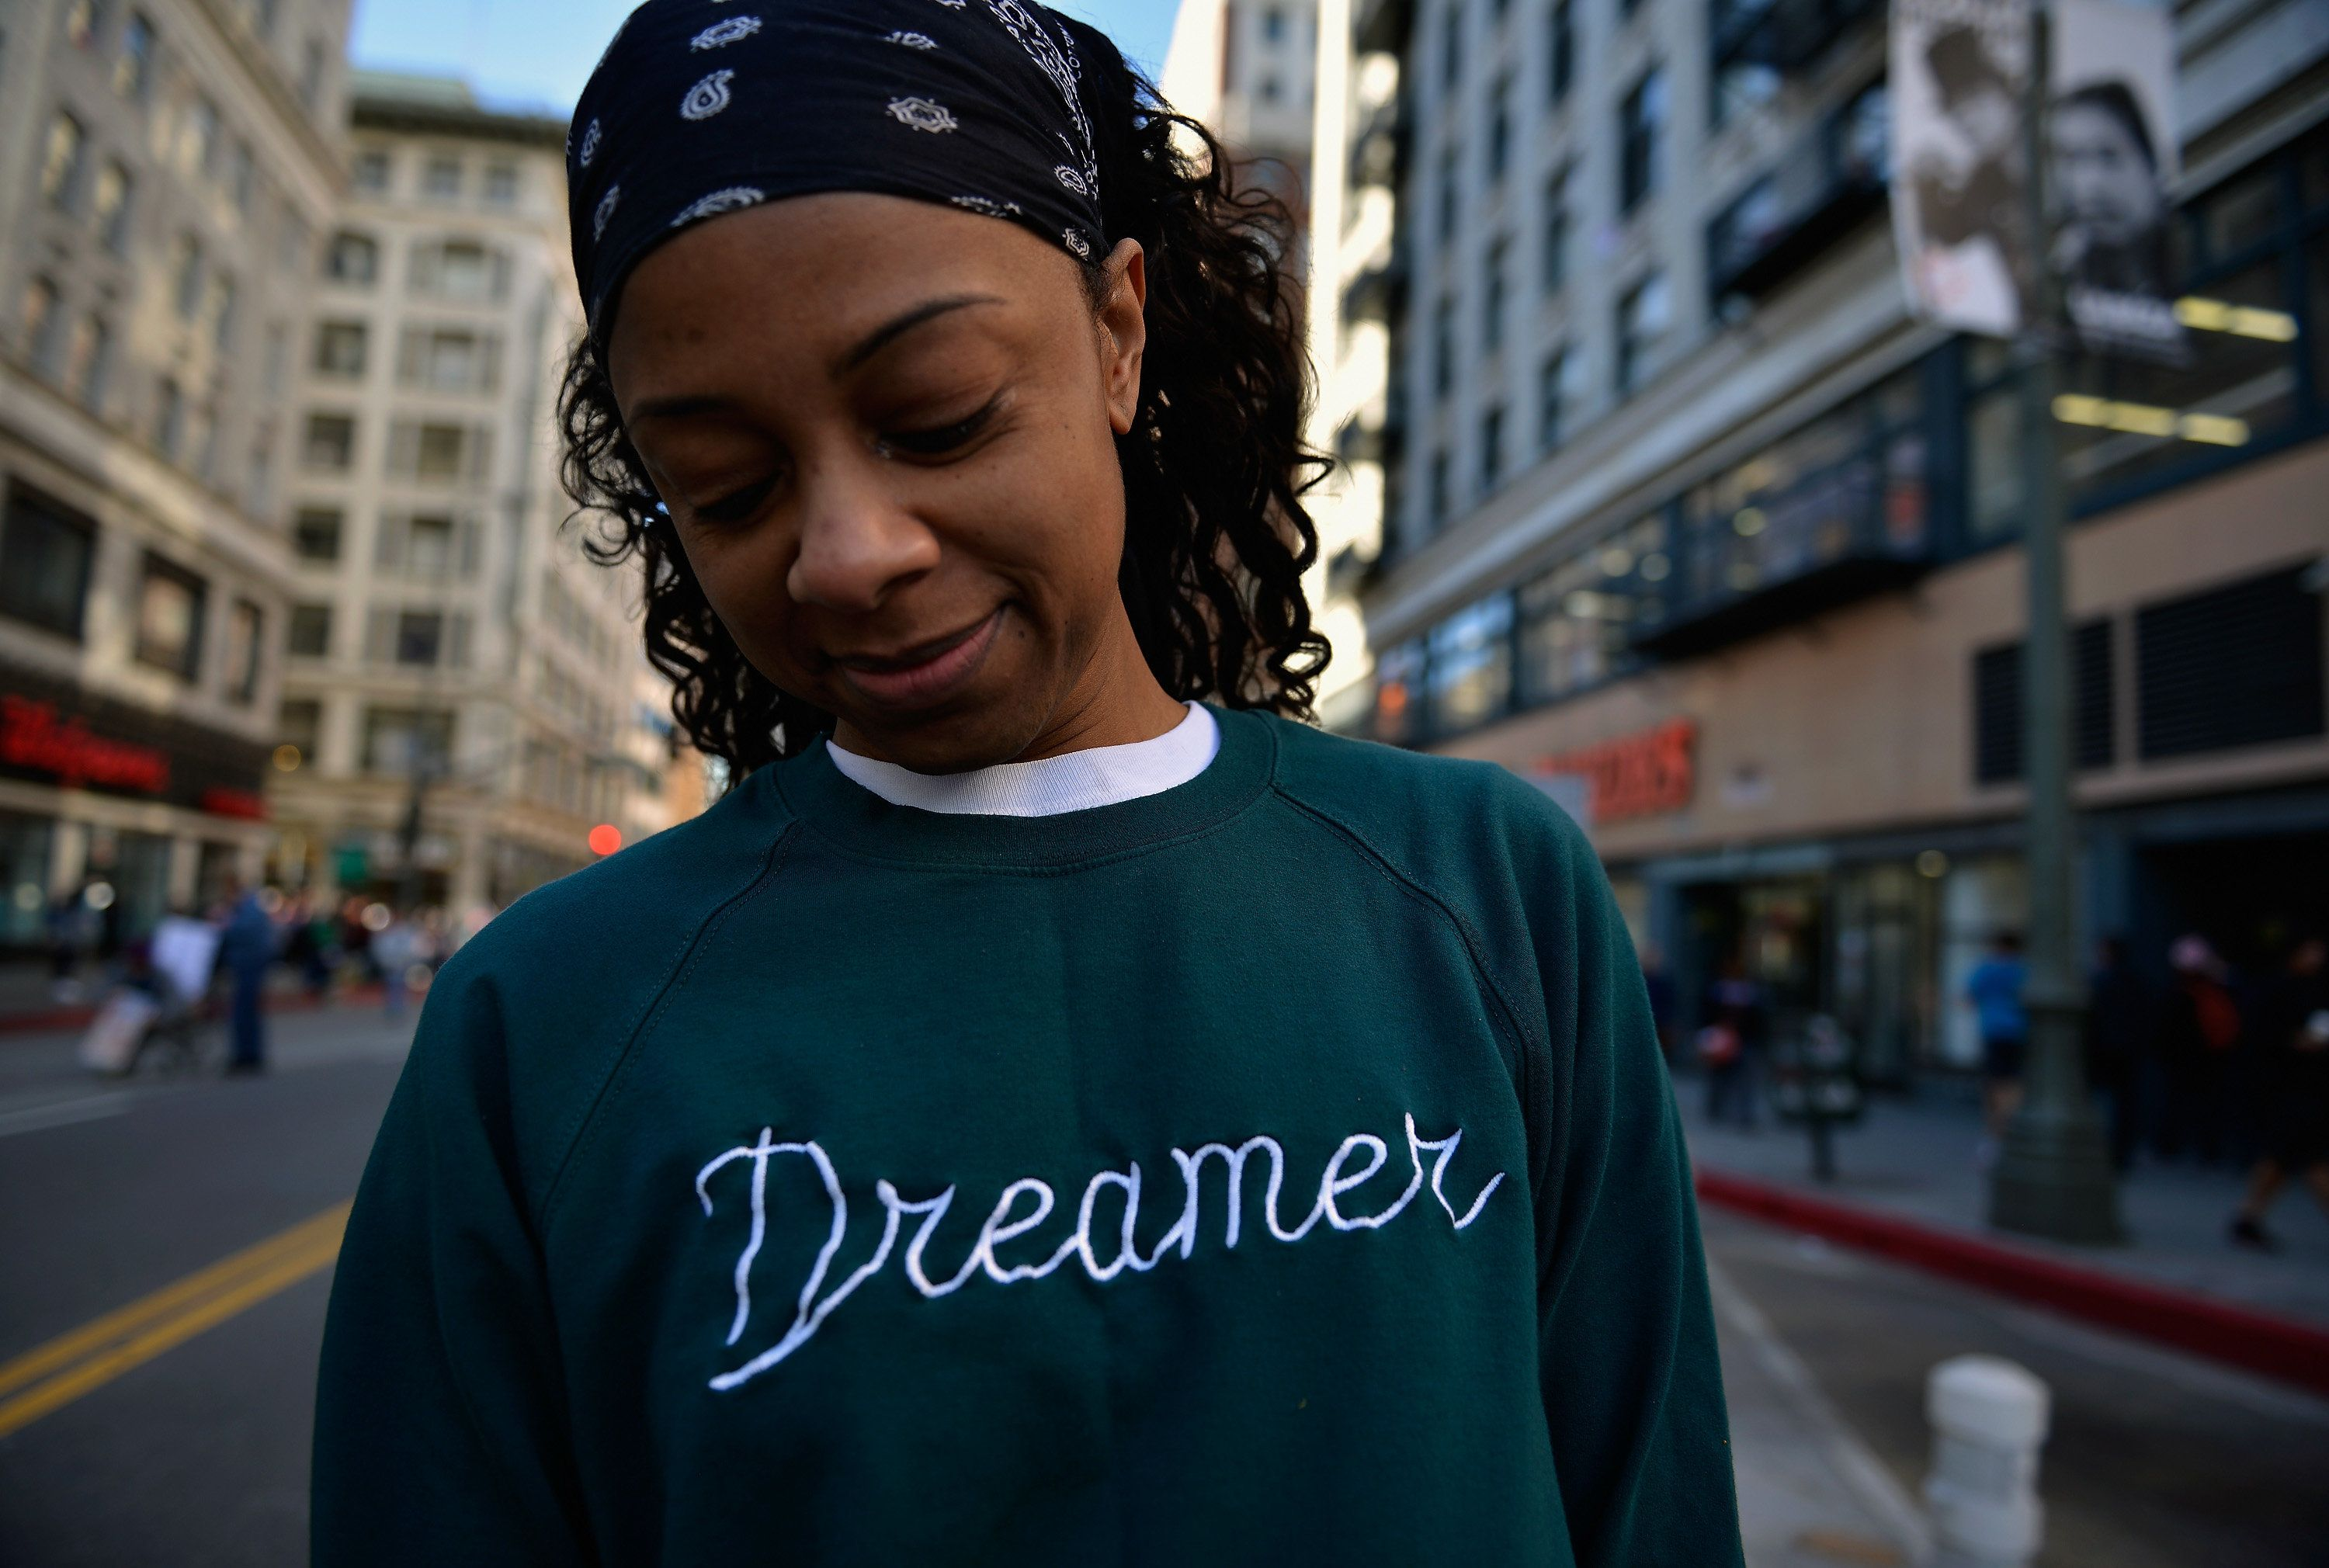 LOS ANGELES, CA - JANUARY 20:  A participant is seen during the Women's March Los Angeles 2018 on January 20, 2018 in Los Angeles, California.  (Photo by Chelsea Guglielmino/Getty Images)